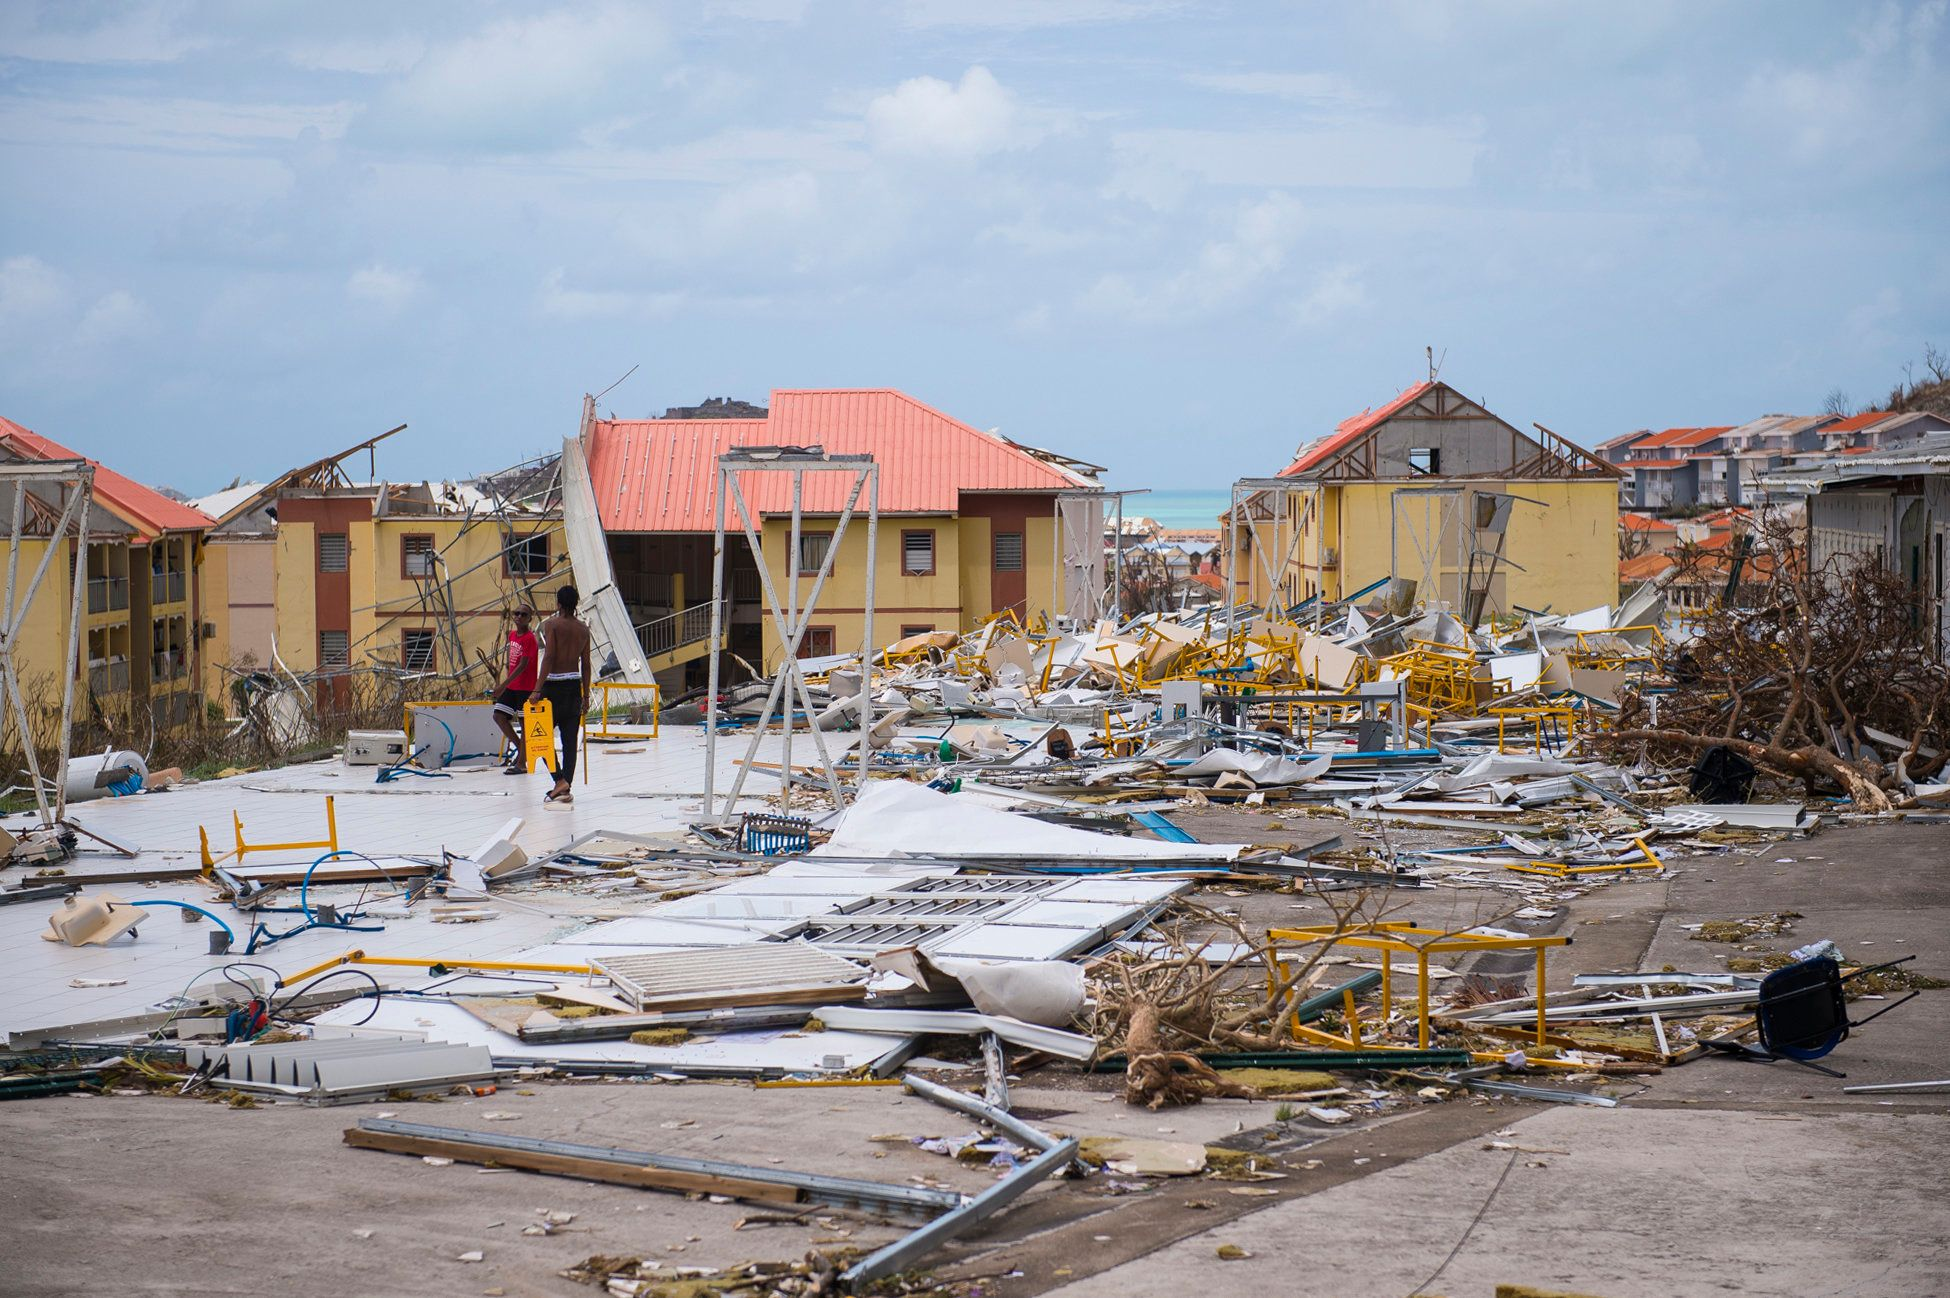 A photo taken on September 7, 2017 shows damage in the Concordia area on the French Carribean island of Saint-Martin, after the passage of Hurricane Irma. France, the Netherlands and Britain on September 7 rushed to provide water, emergency rations and rescue teams to territories in the Caribbean hit by Hurricane Irma, with aid efforts complicated by damage to local airports and harbours. The worst-affected island so far is Saint Martin, which is divided between the Netherlands and France, where French Prime Minister Edouard Philippe confirmed four people were killed and 50 more injured.    / AFP PHOTO / Lionel CHAMOISEAU        (Photo credit should read LIONEL CHAMOISEAU/AFP/Getty Images)